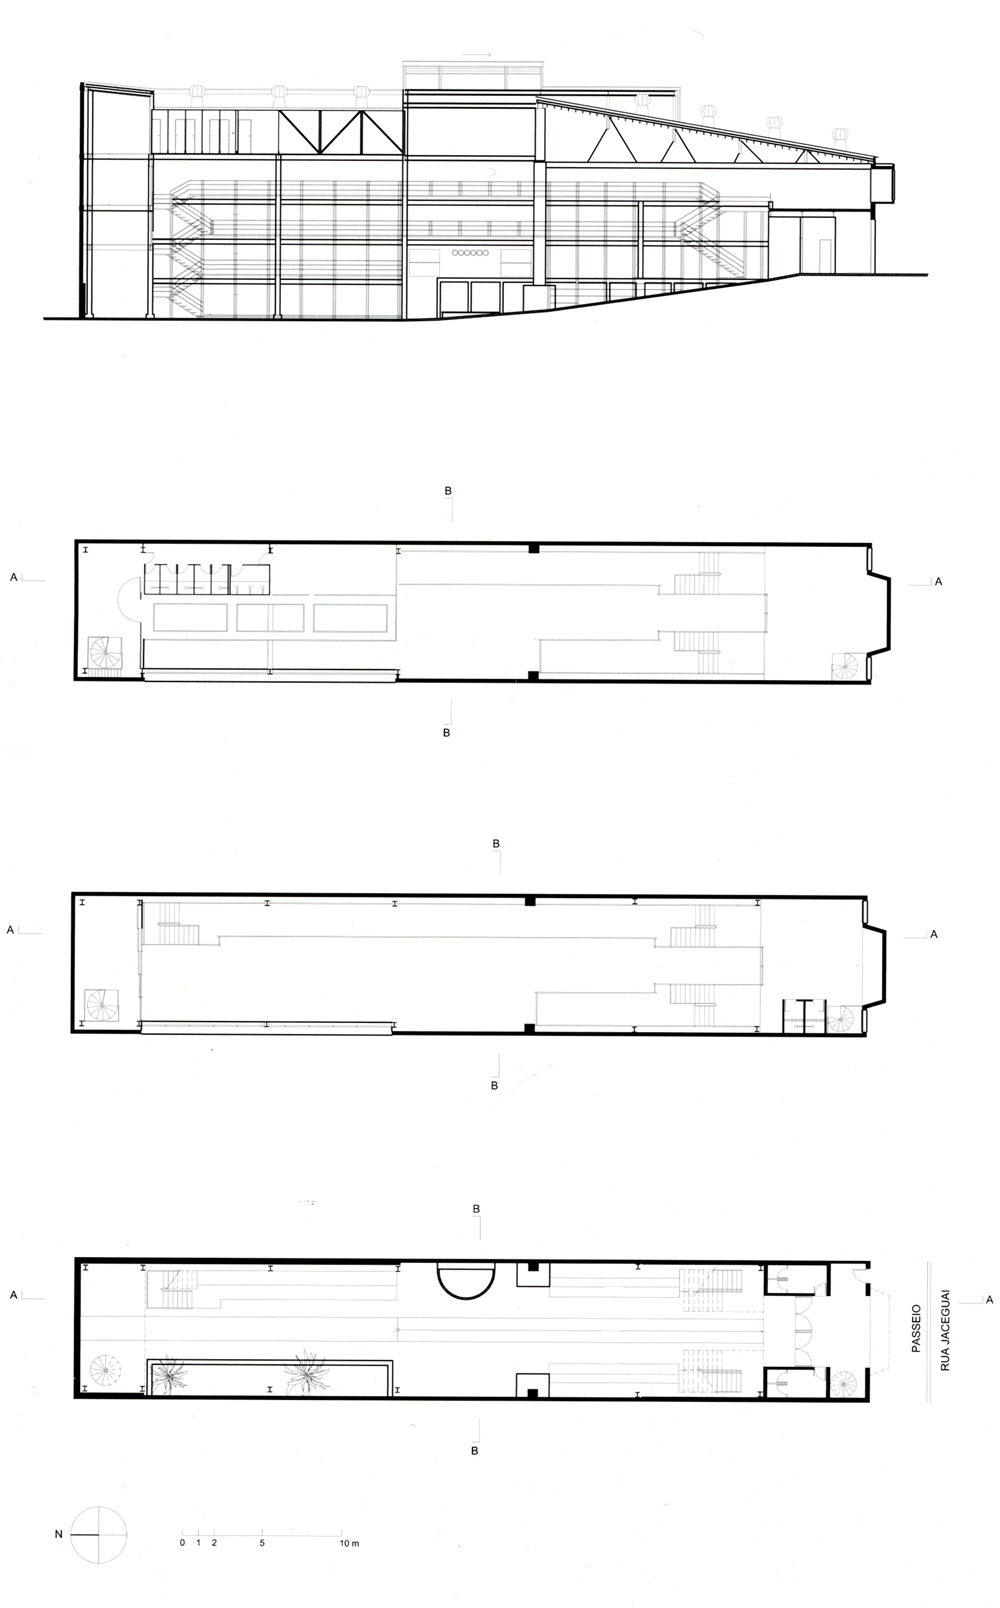 Floor Plans and section of Teatro Oficina / Lina Bo Bardi